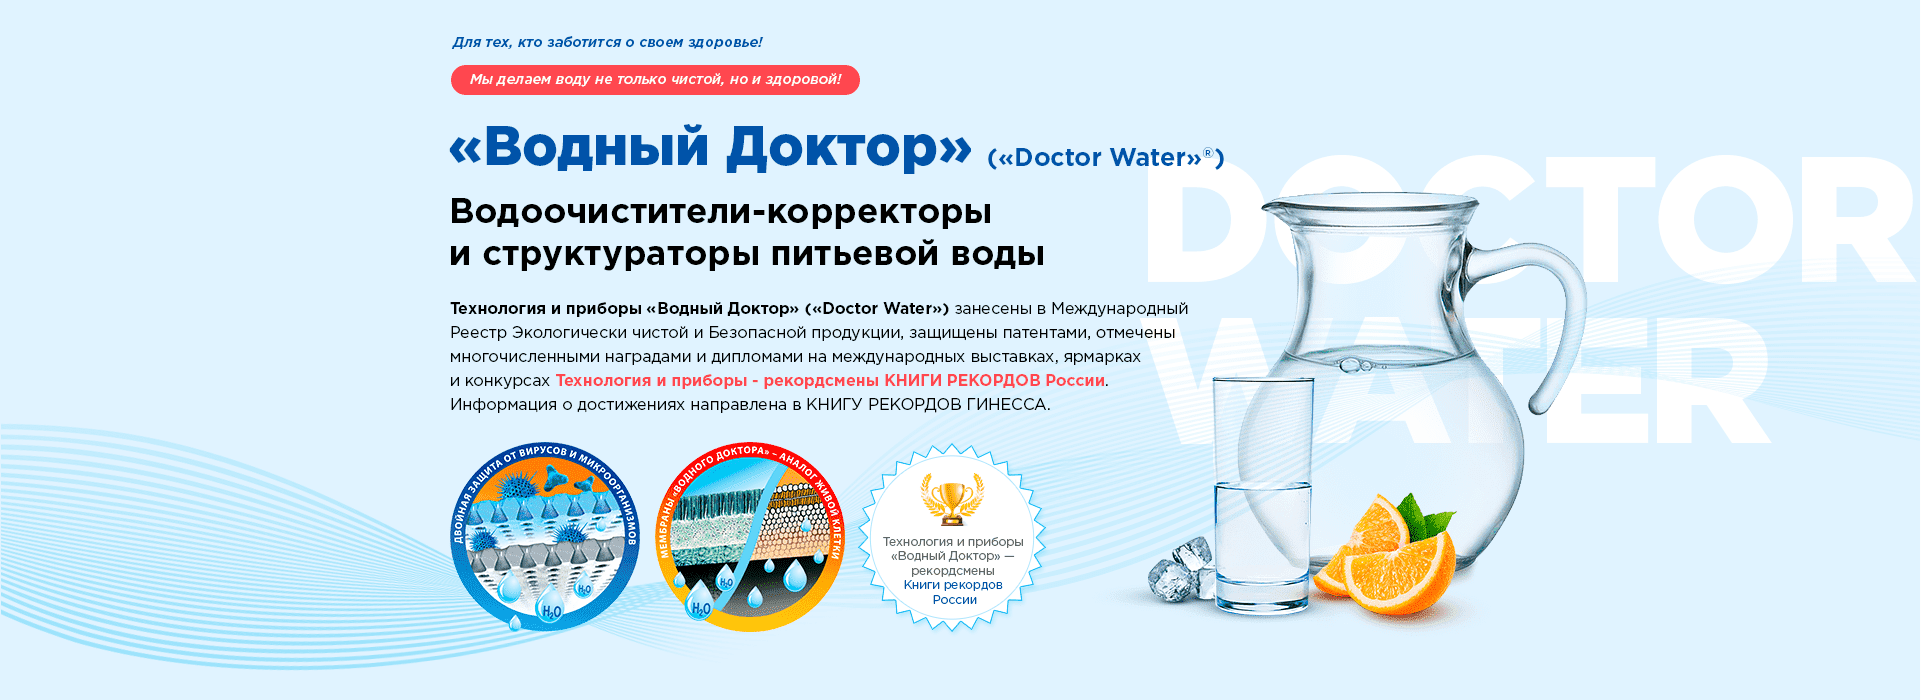 //wdprofi.ru/wp-content/uploads/2018/05/first-slide2.png